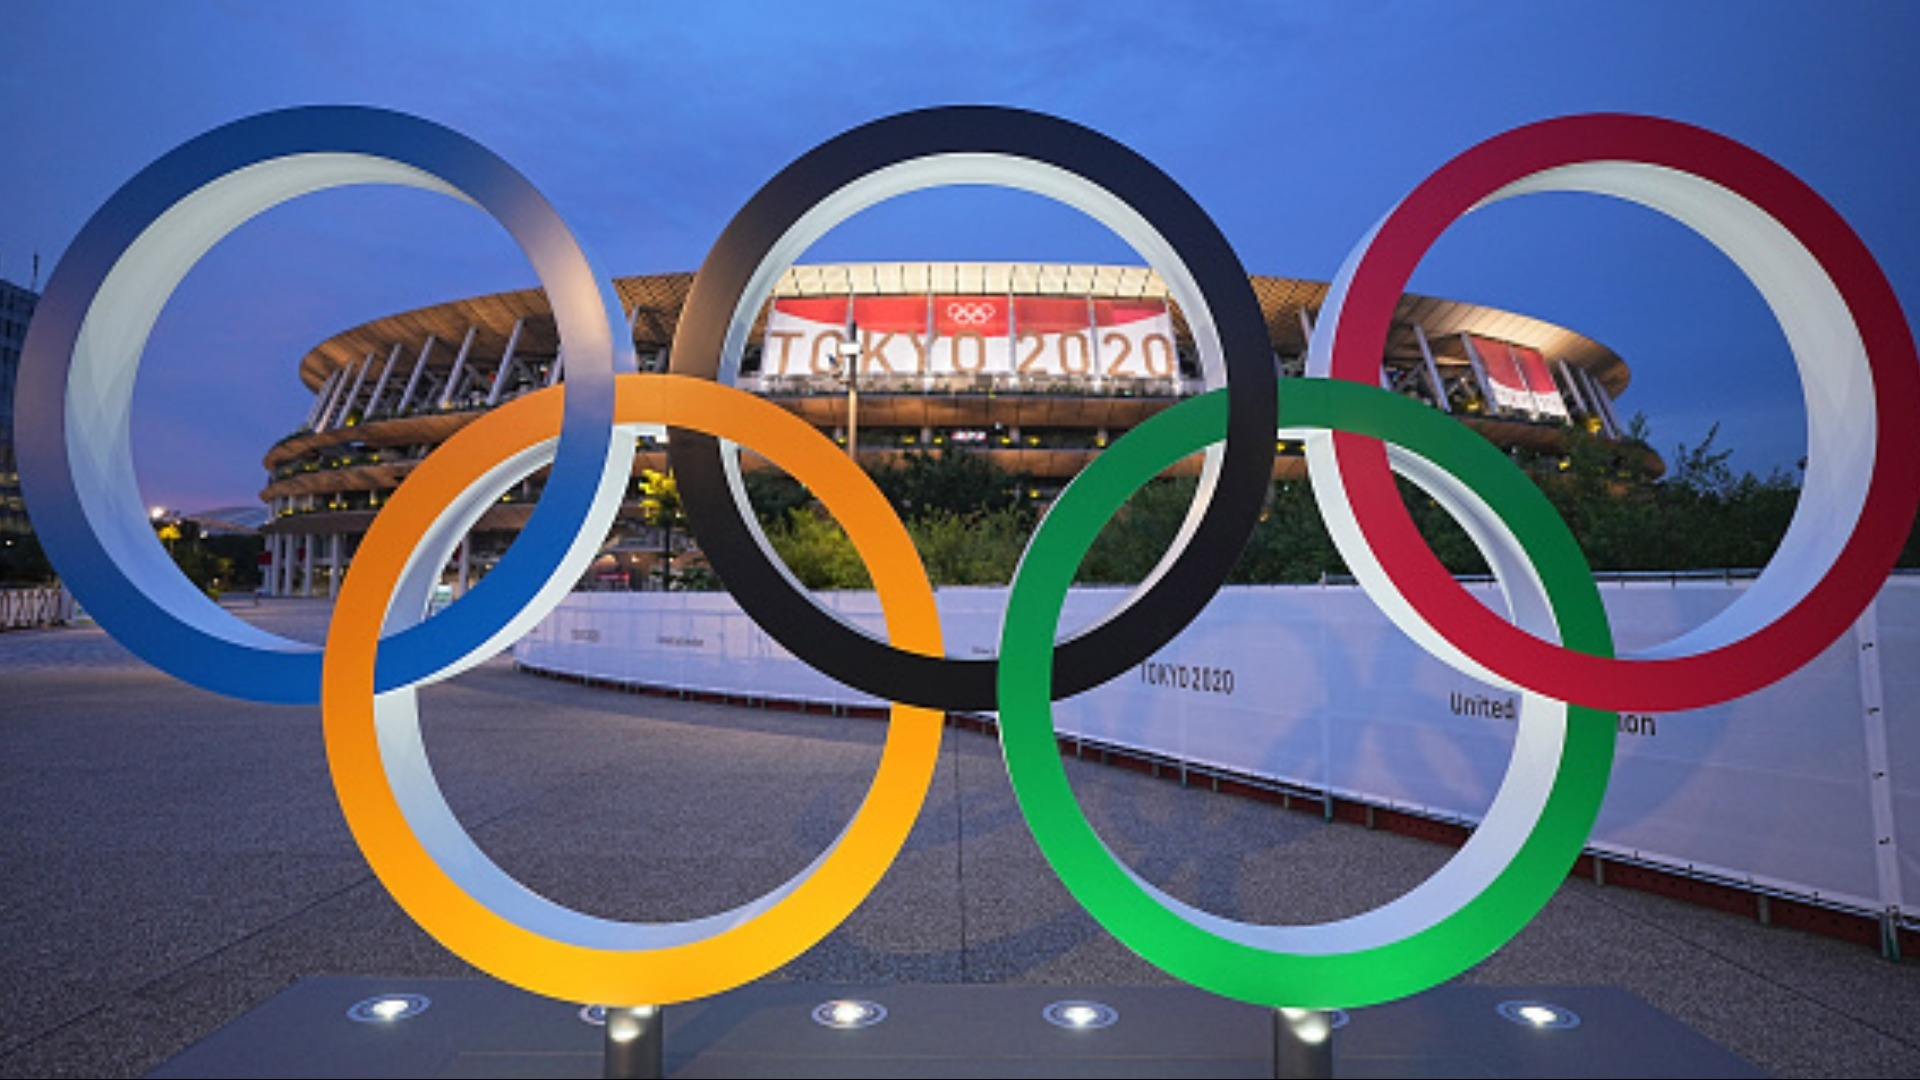 news.yahoo.com: Asian American Olympians face discrimination in the U.S., report says